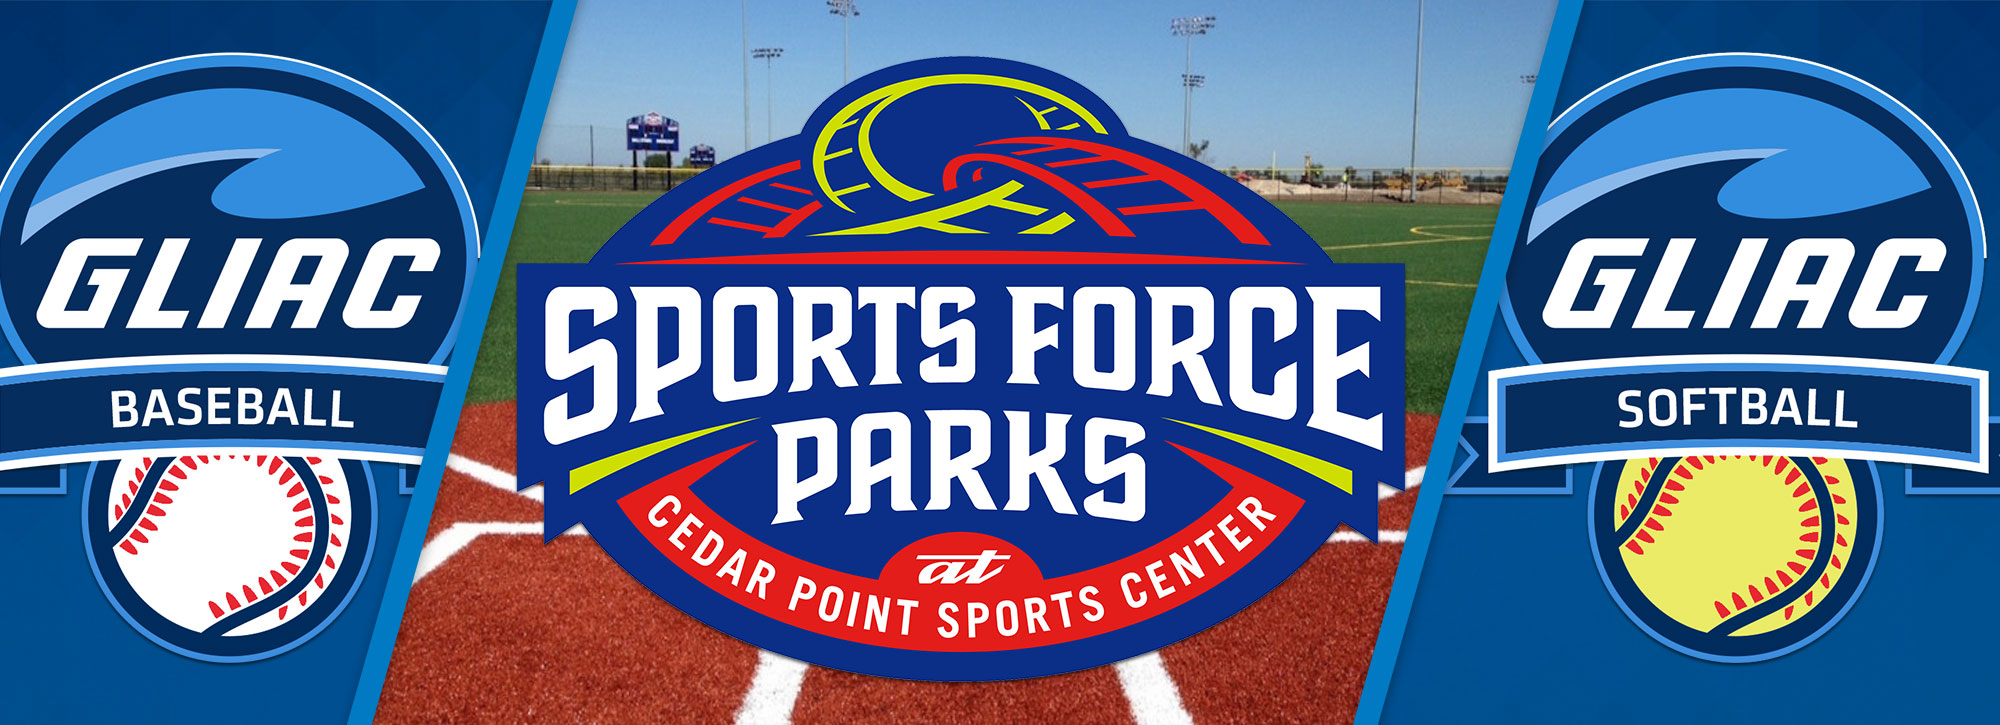 Sports Force Parks to Host GLIAC Baseball & Softball Tournaments